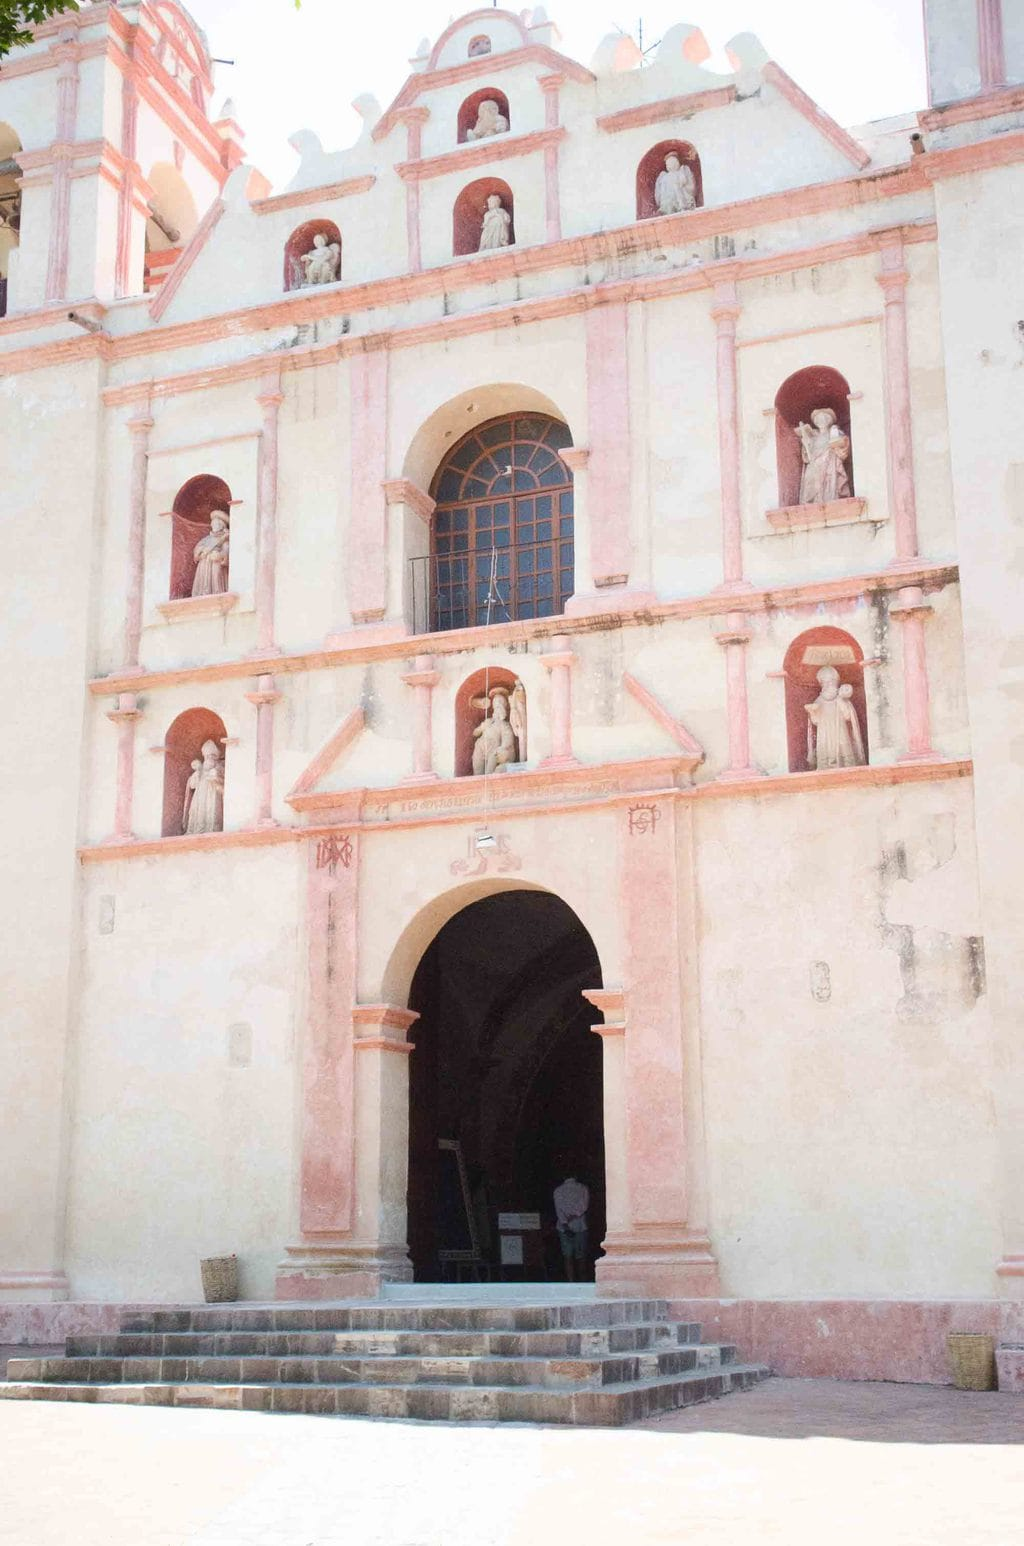 San Jeronimo Church in Tlacochahuaya, Oaxaca